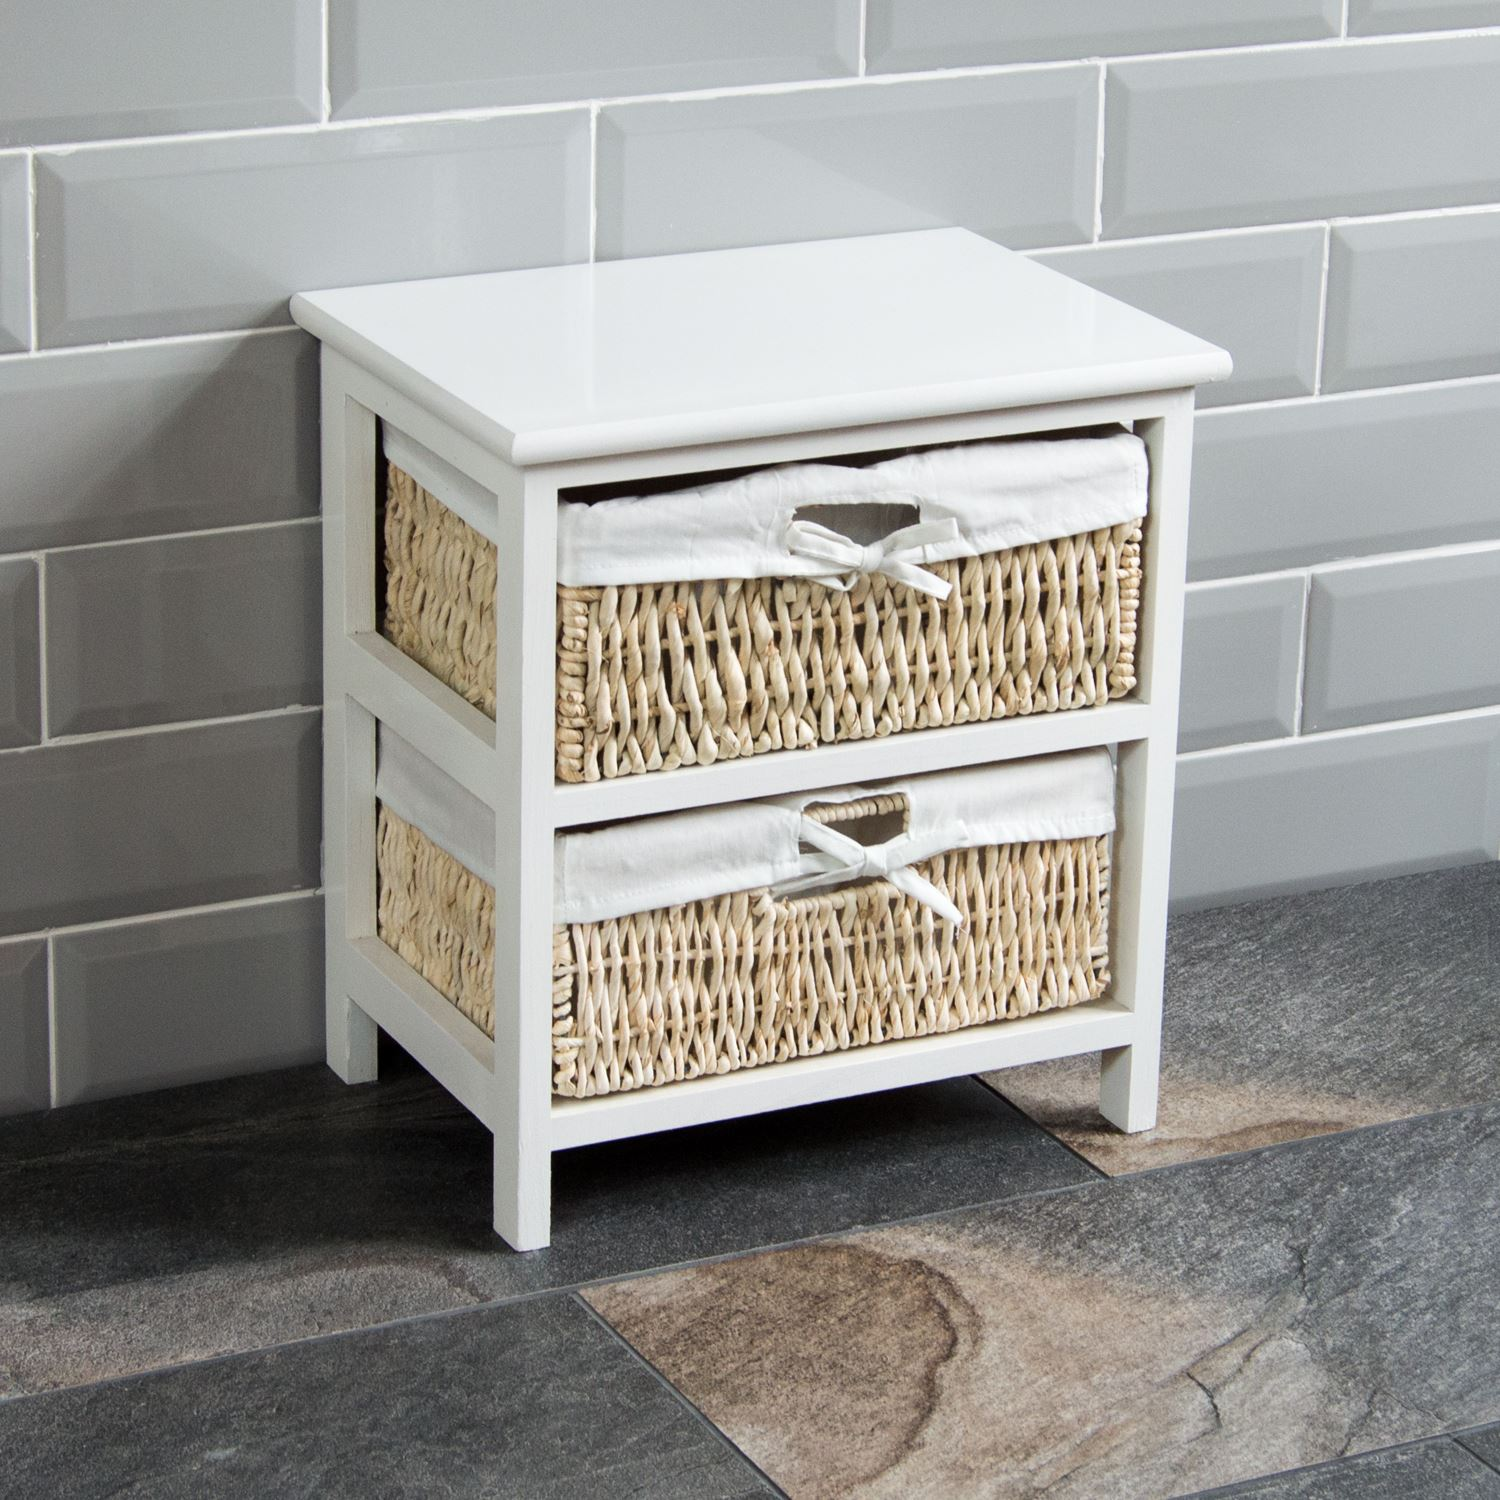 Basket Storage With Drawers Cabinets ~ Drawer wood maize basket drawers white cupboard cabinet